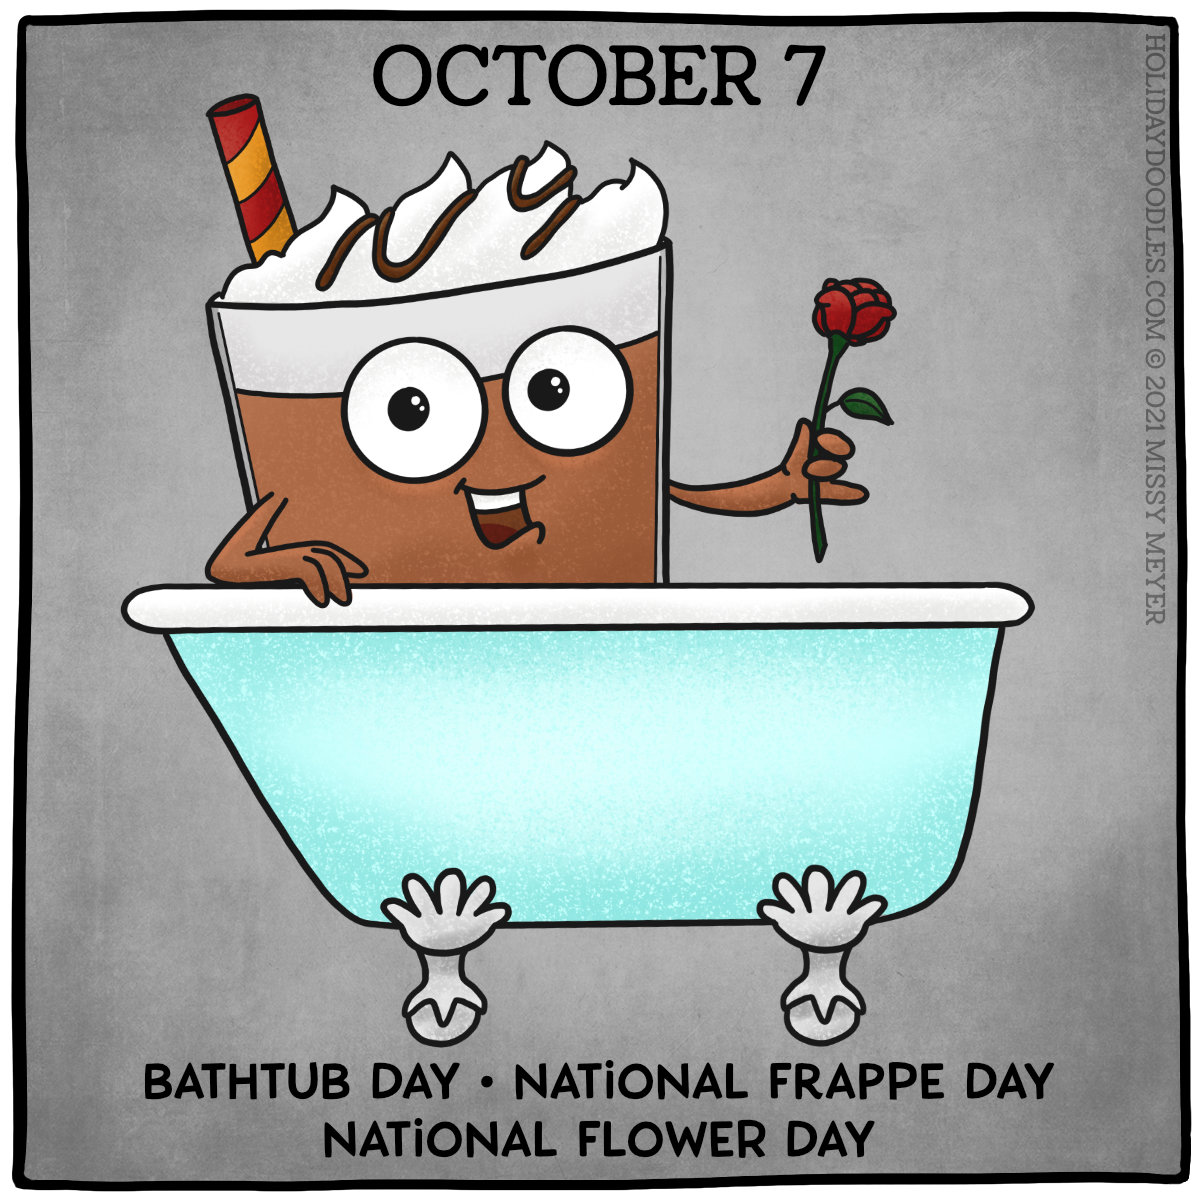 October 7 (every year): Bathtub Day; National Frappe Day; National Flower Day